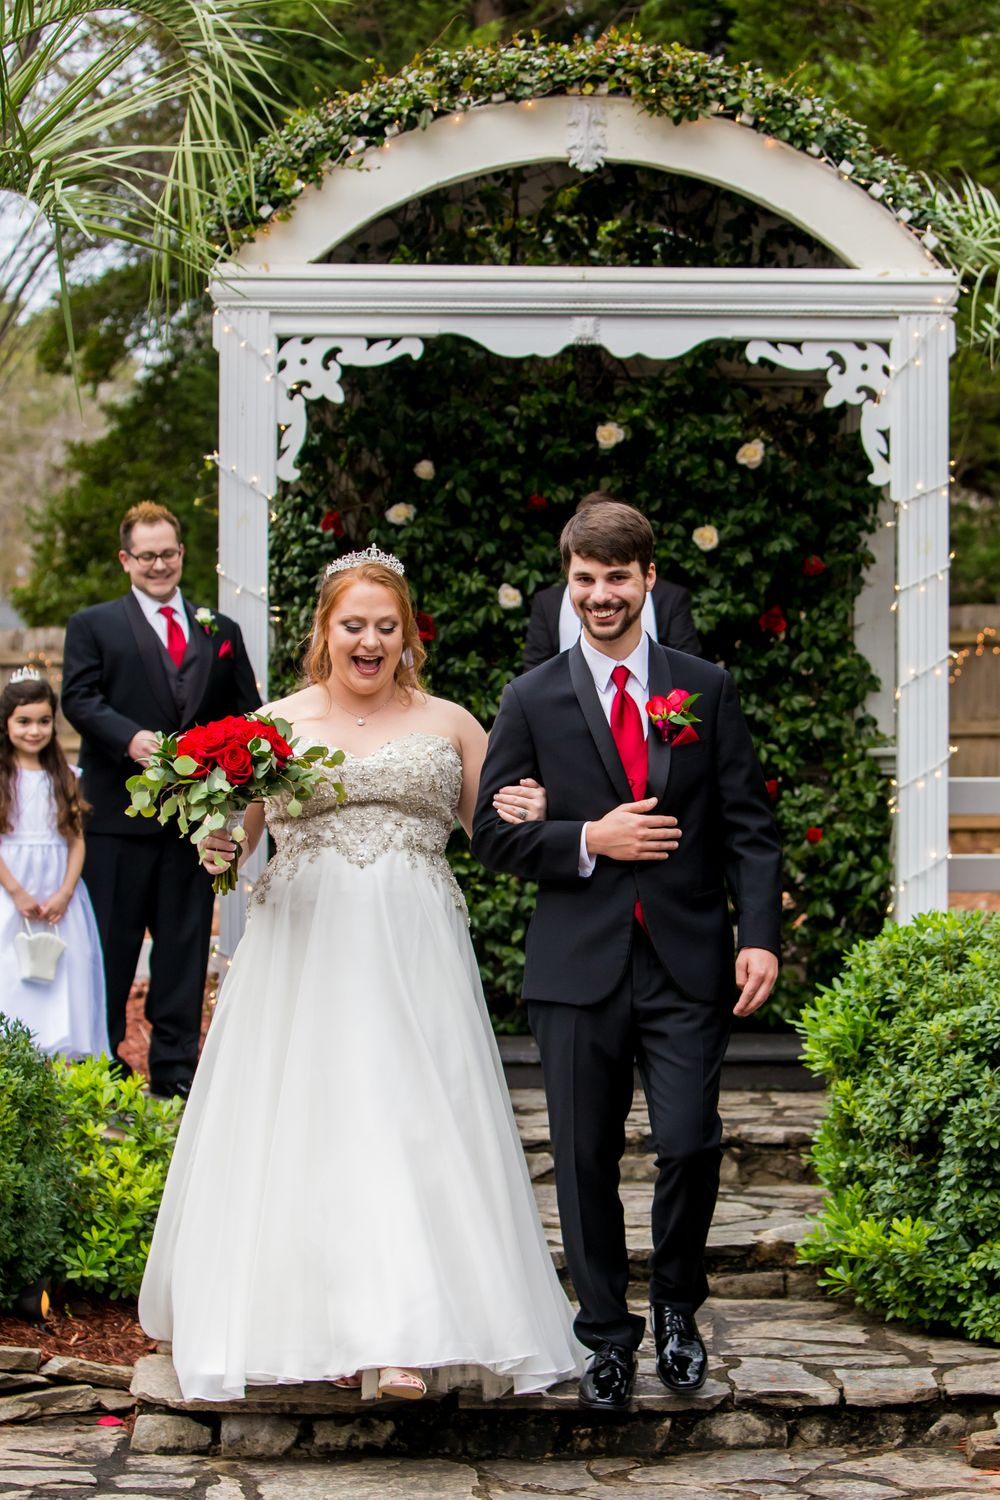 Bride and groom walk down the aisle after their wedding ceremony at Winter Green Woods in Lexington, SC